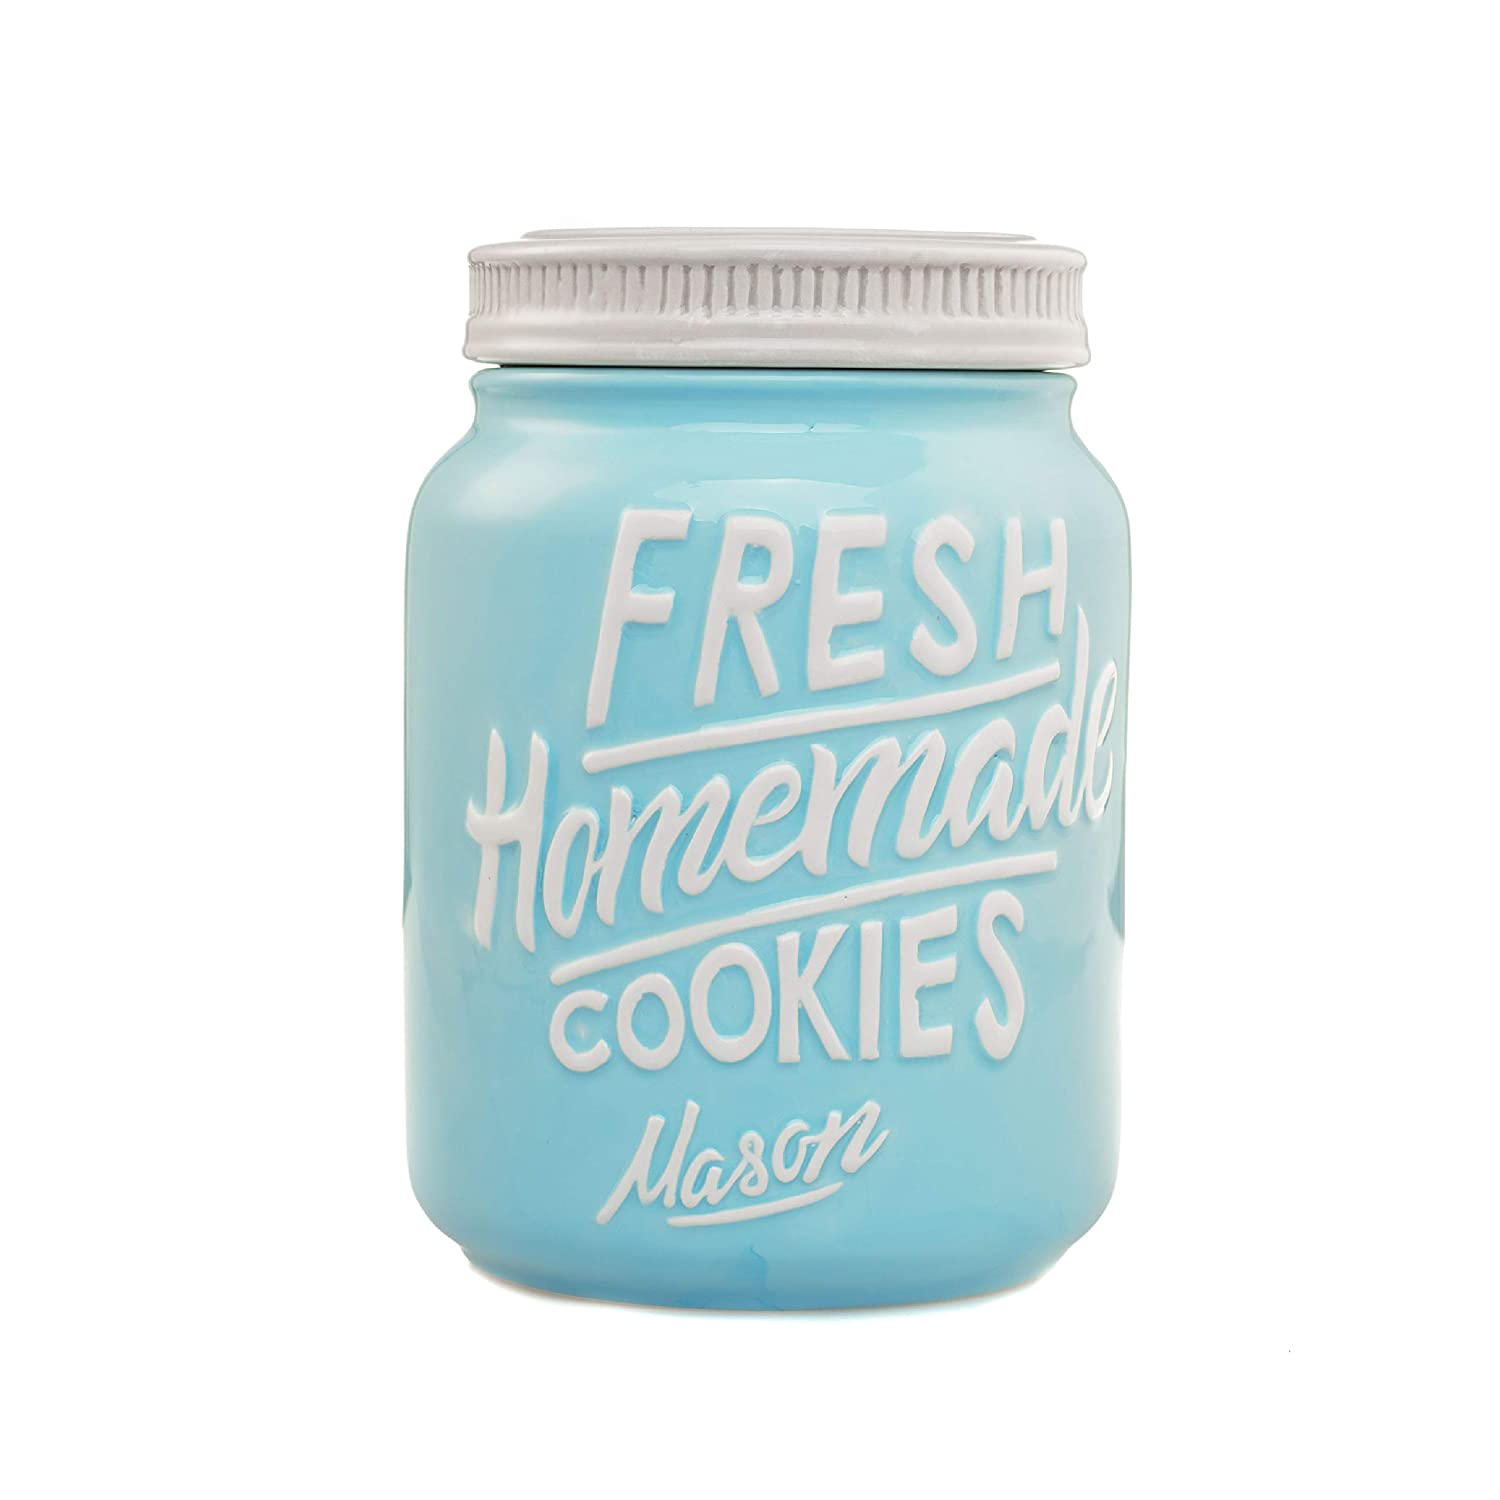 Blue Ceramic Mason Jar Cookie Jar - Keep Your Cookies & Baked Goods Fresh with an Airtight Lid | Handy Container | Vintage Farmhouse Decor & Collector Gift | Rustic Kitchen Accessory by Goodscious